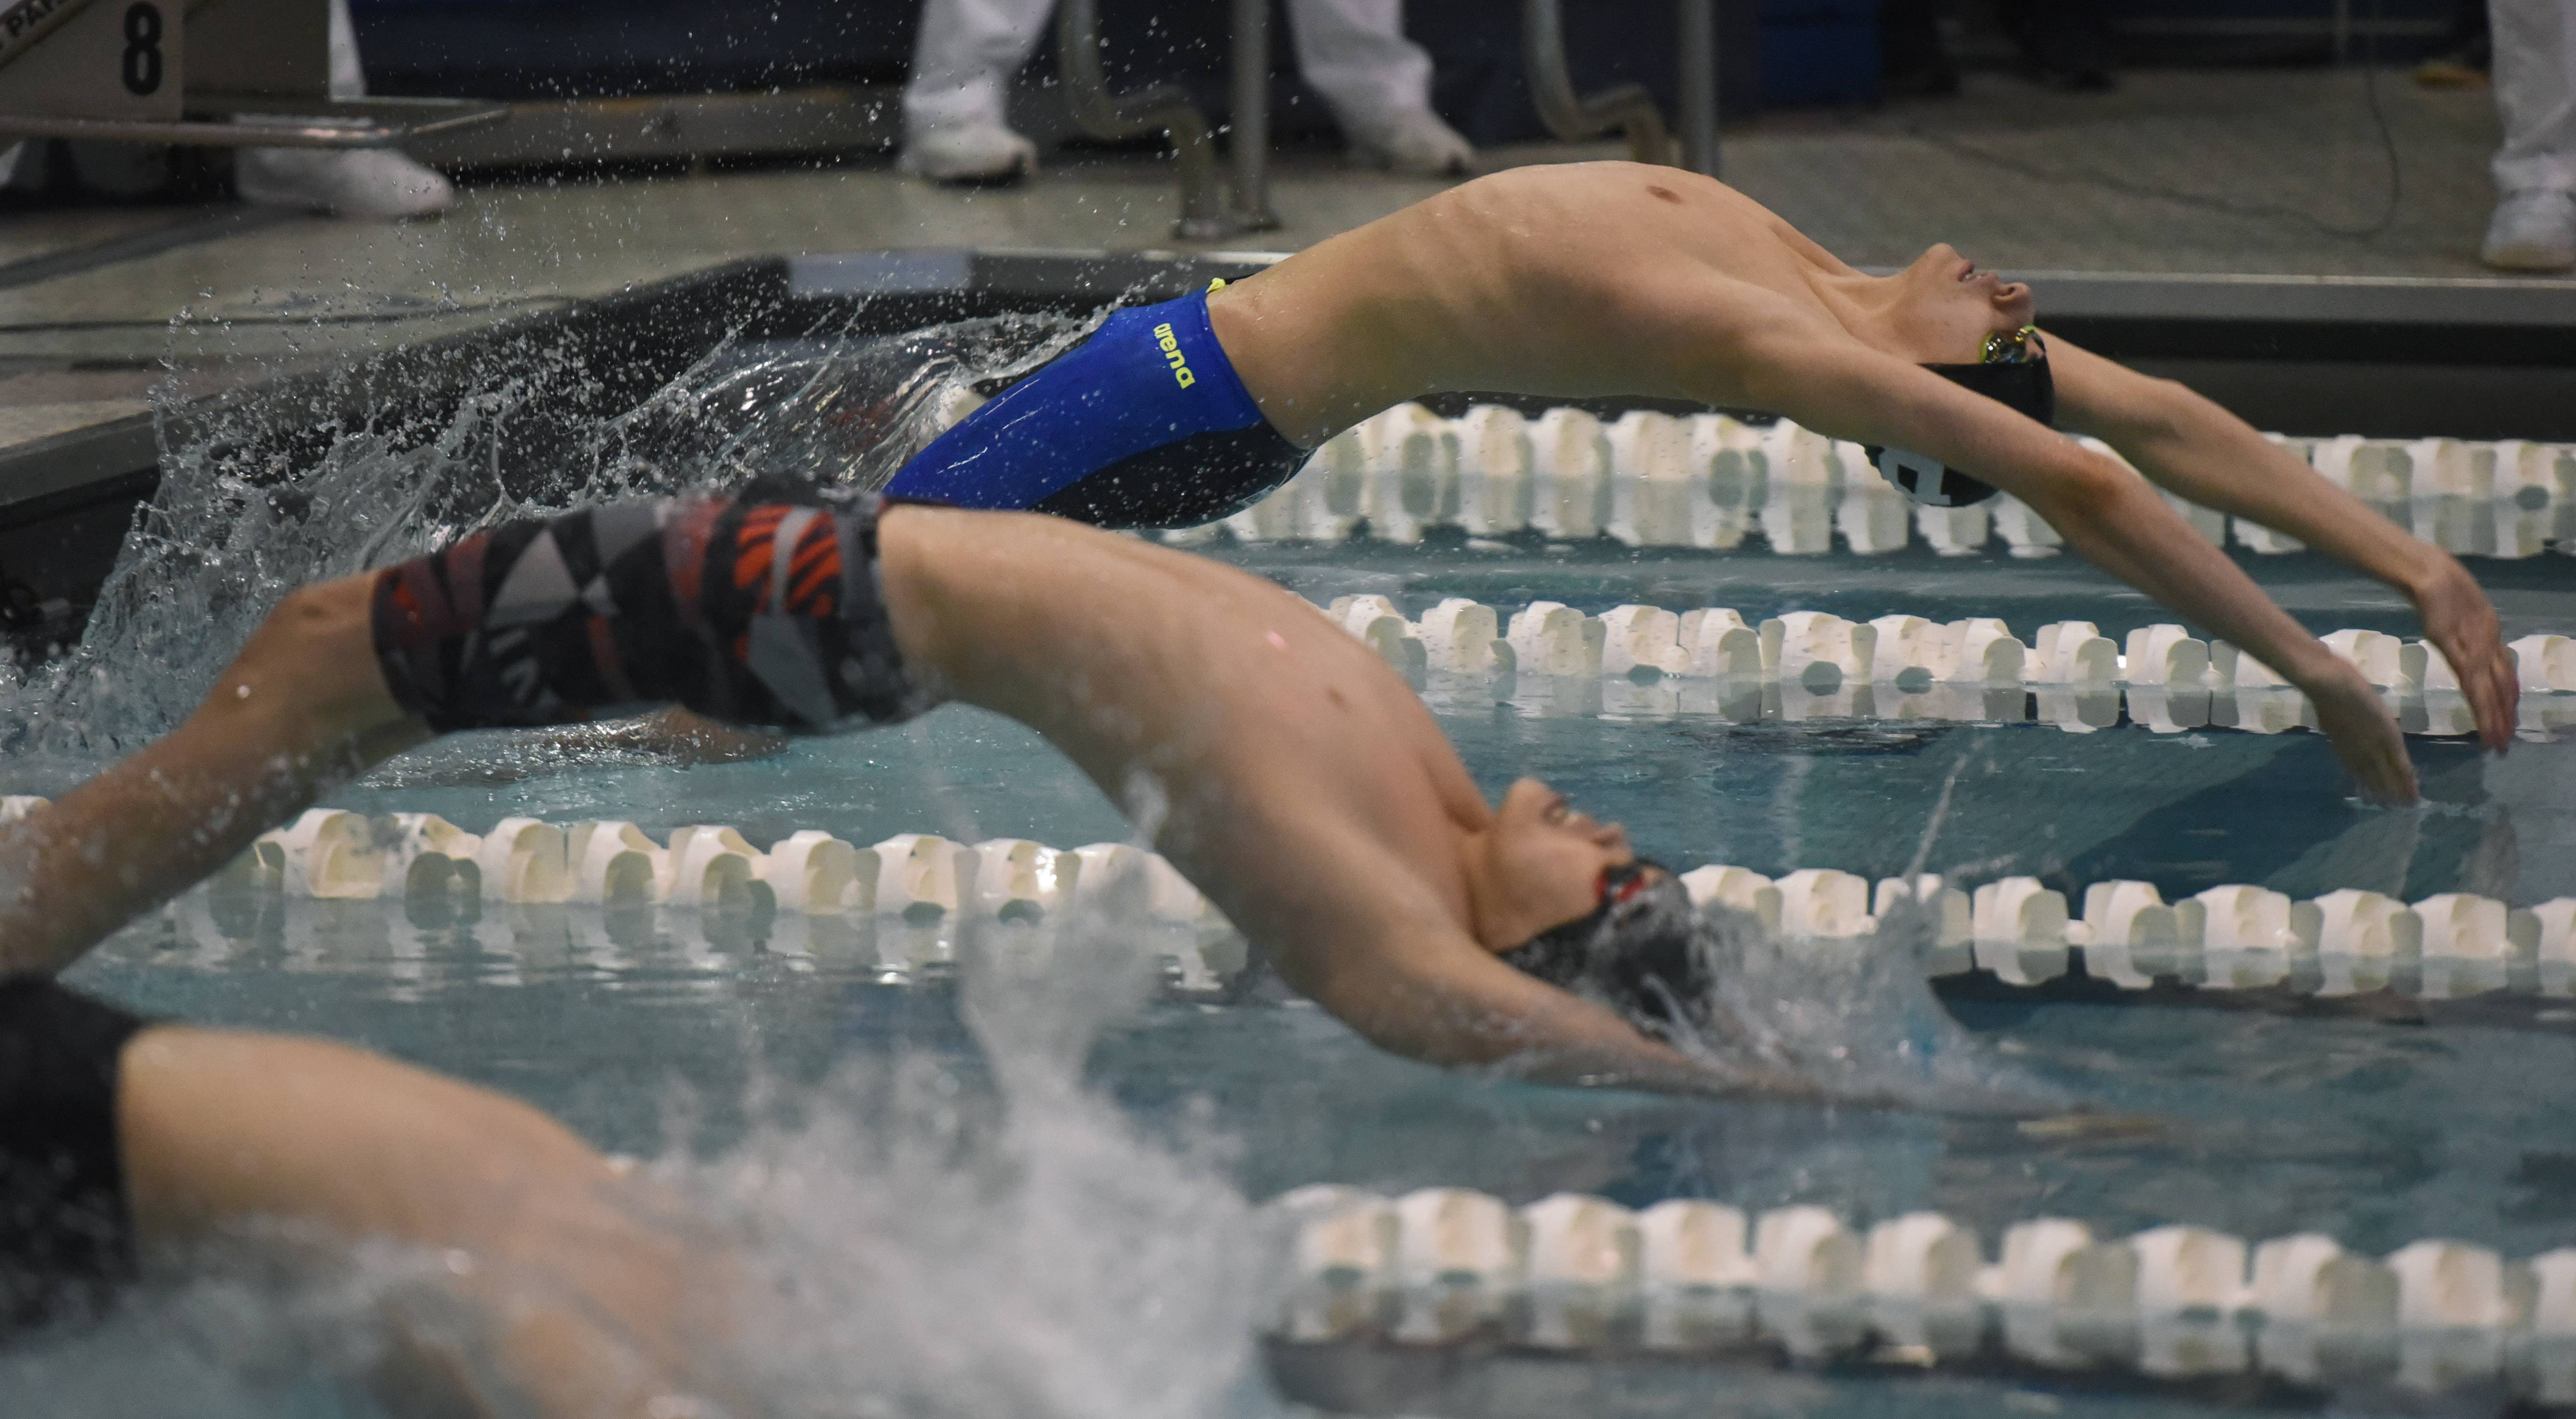 Barrington's Griffin O'Leary, far right, leaves the starting block during the 200-yard medley relay consolation heat of the boys state swimming and diving finals at New Trier High School in Winnetka Saturday.